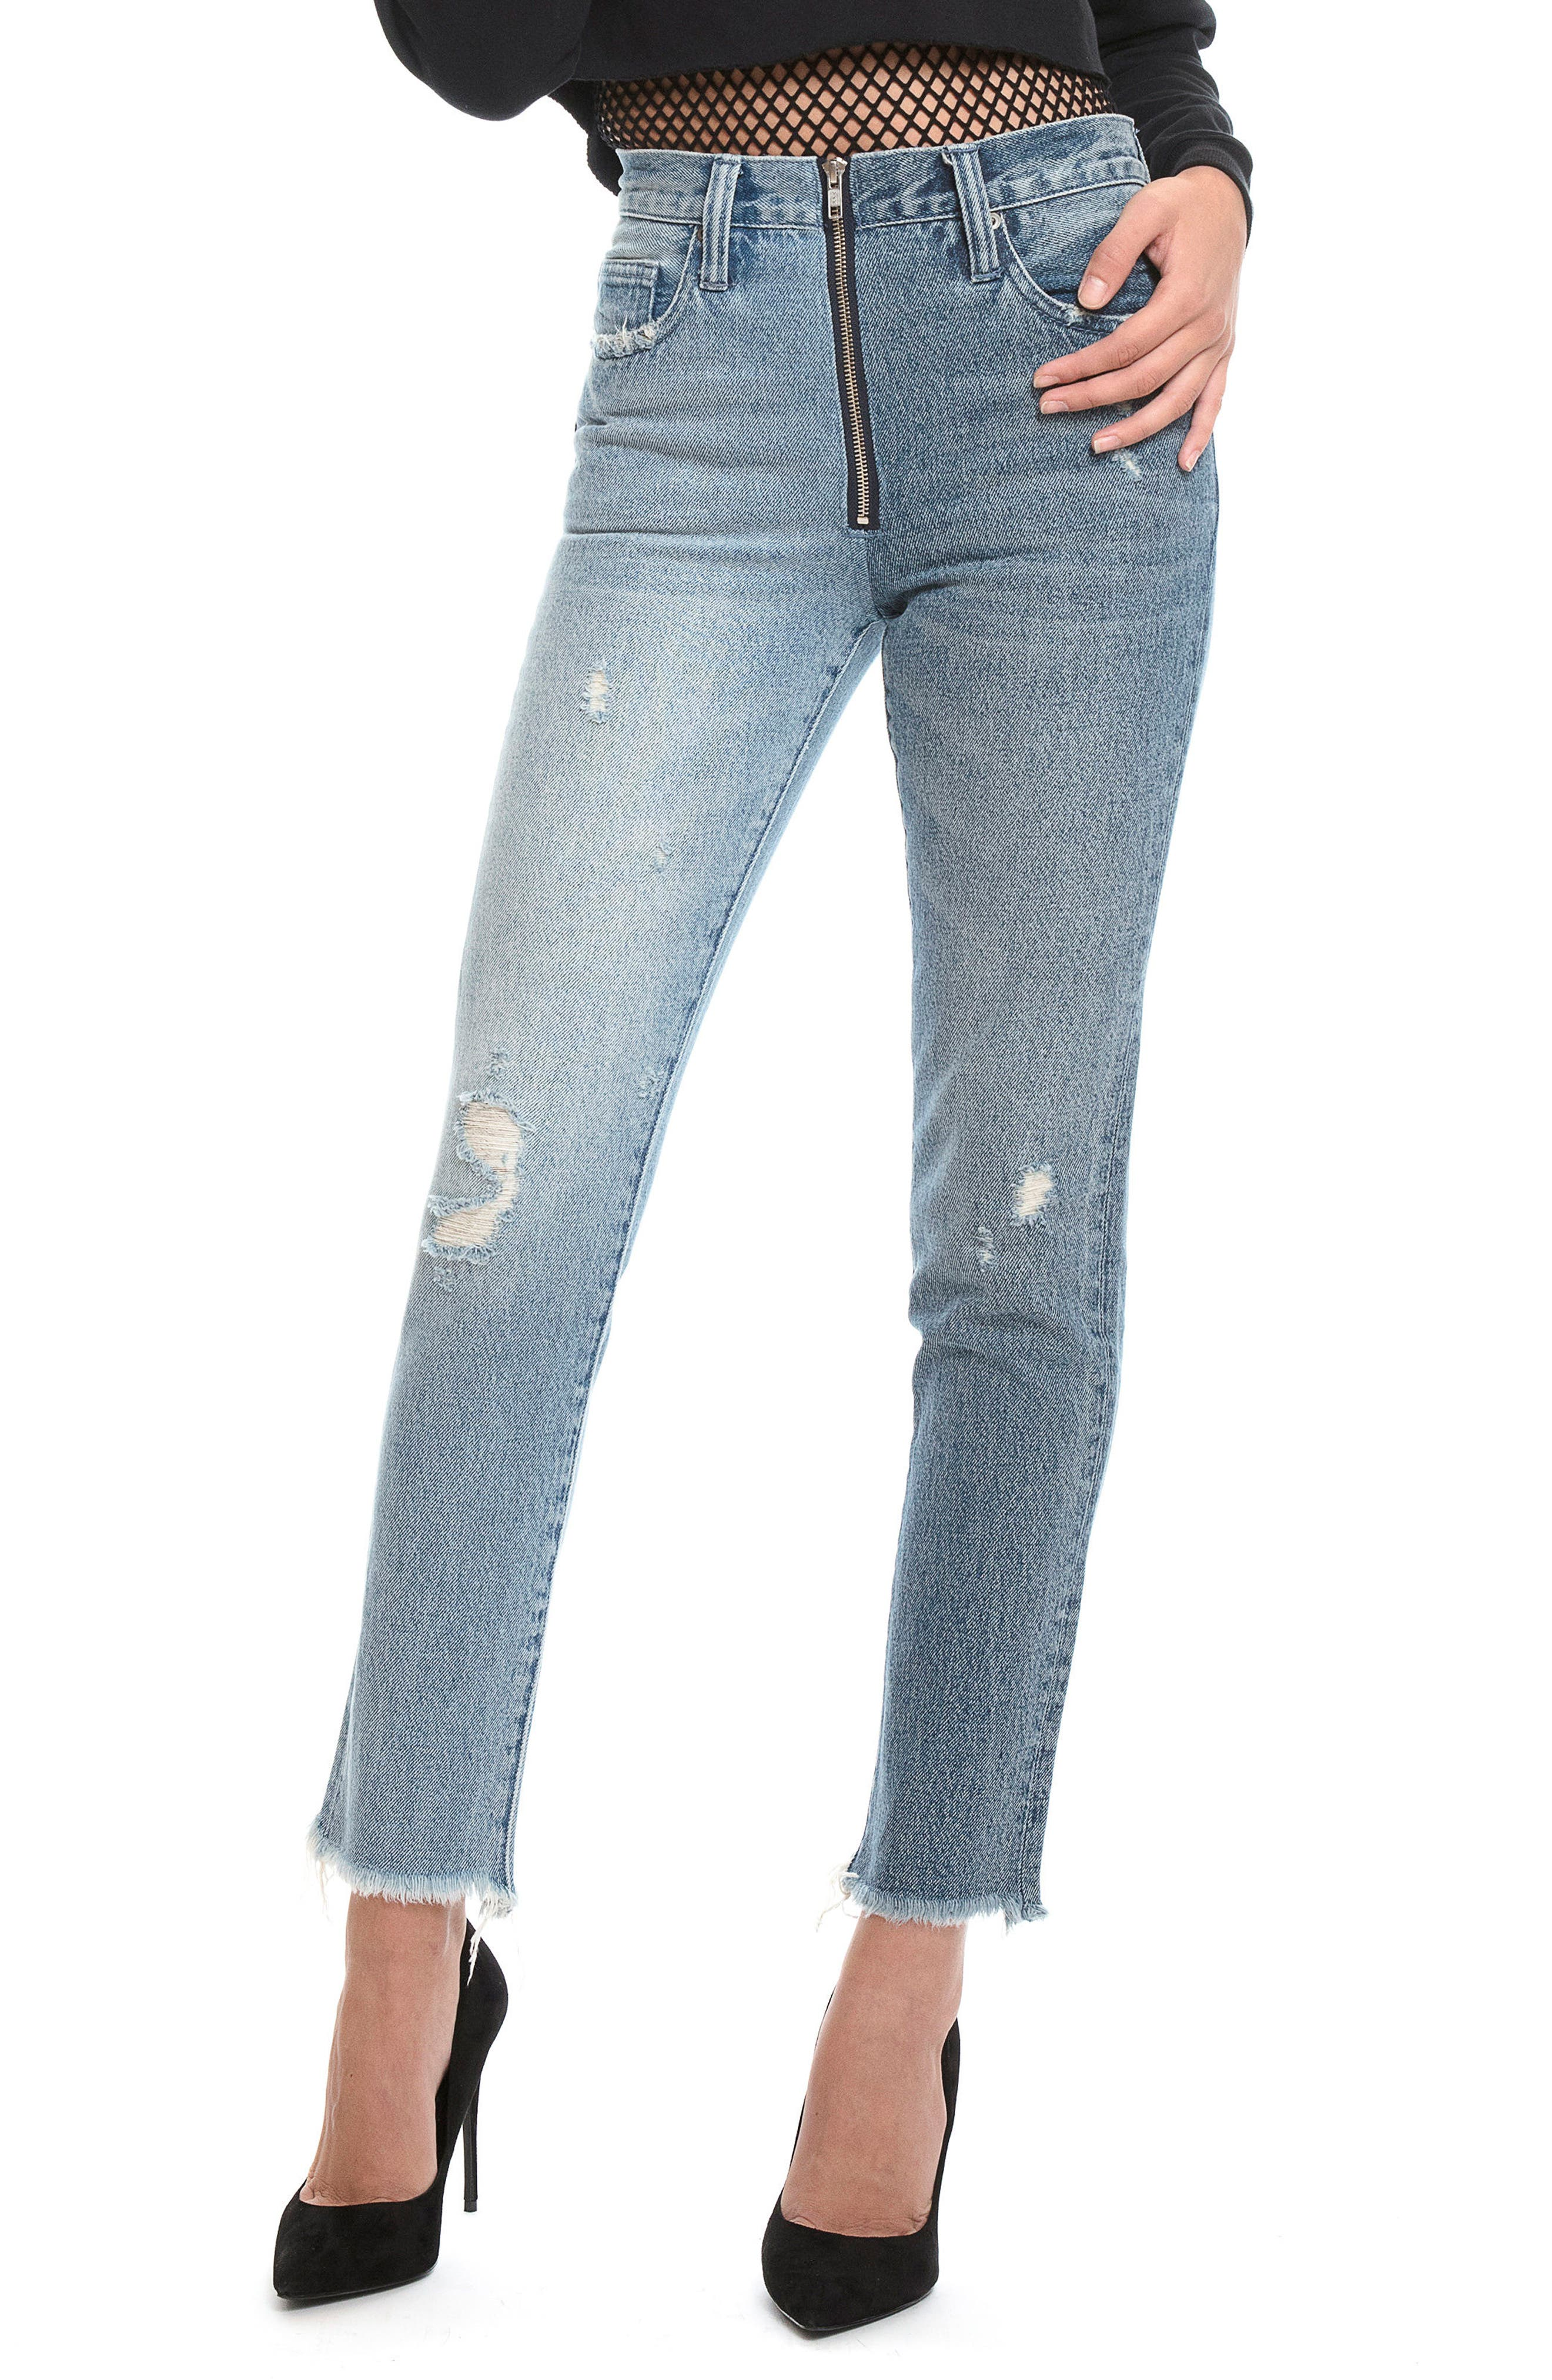 Chevelle Ankle Skinny Jeans,                             Main thumbnail 1, color,                             Indigo